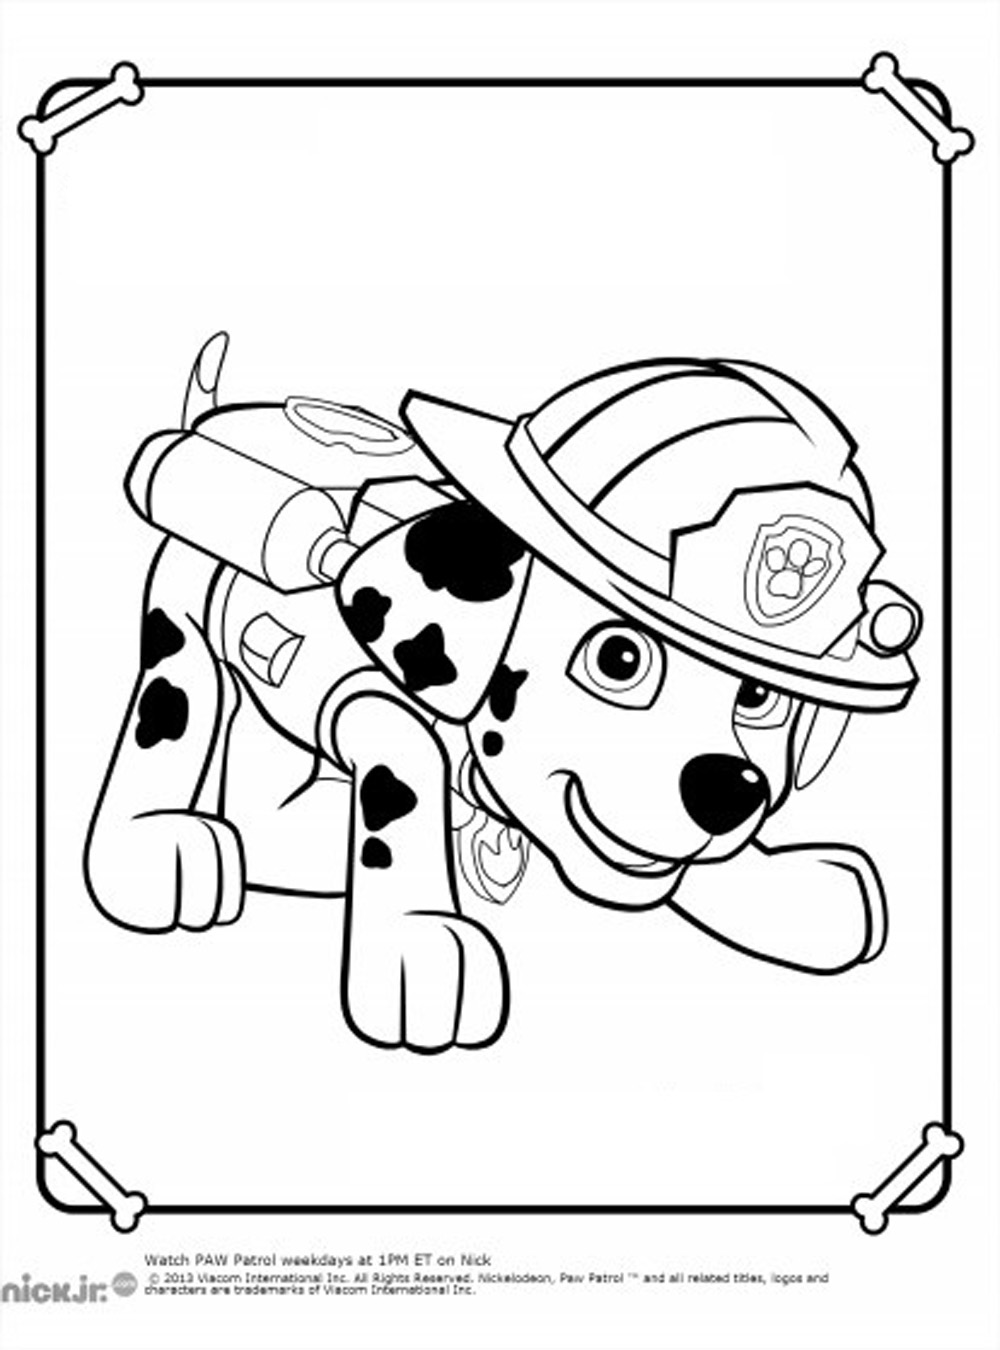 Free Paw Patrol coloring page to download